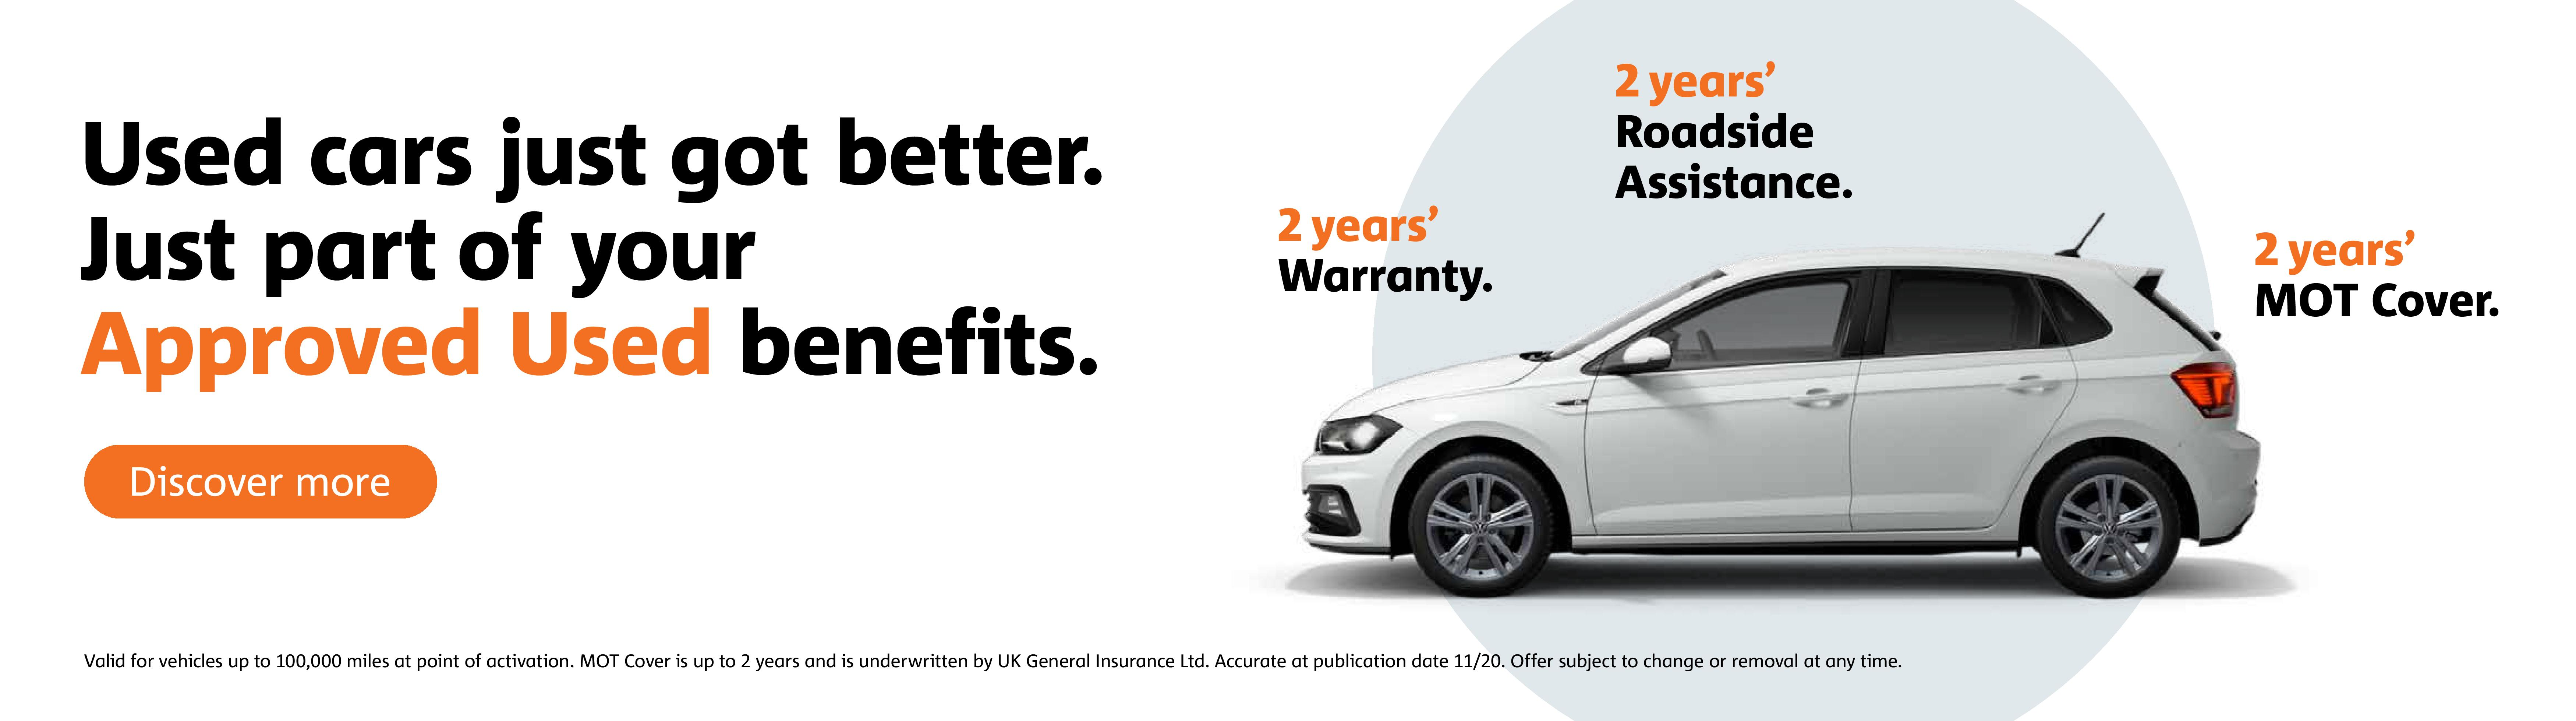 Approved Used Benefits